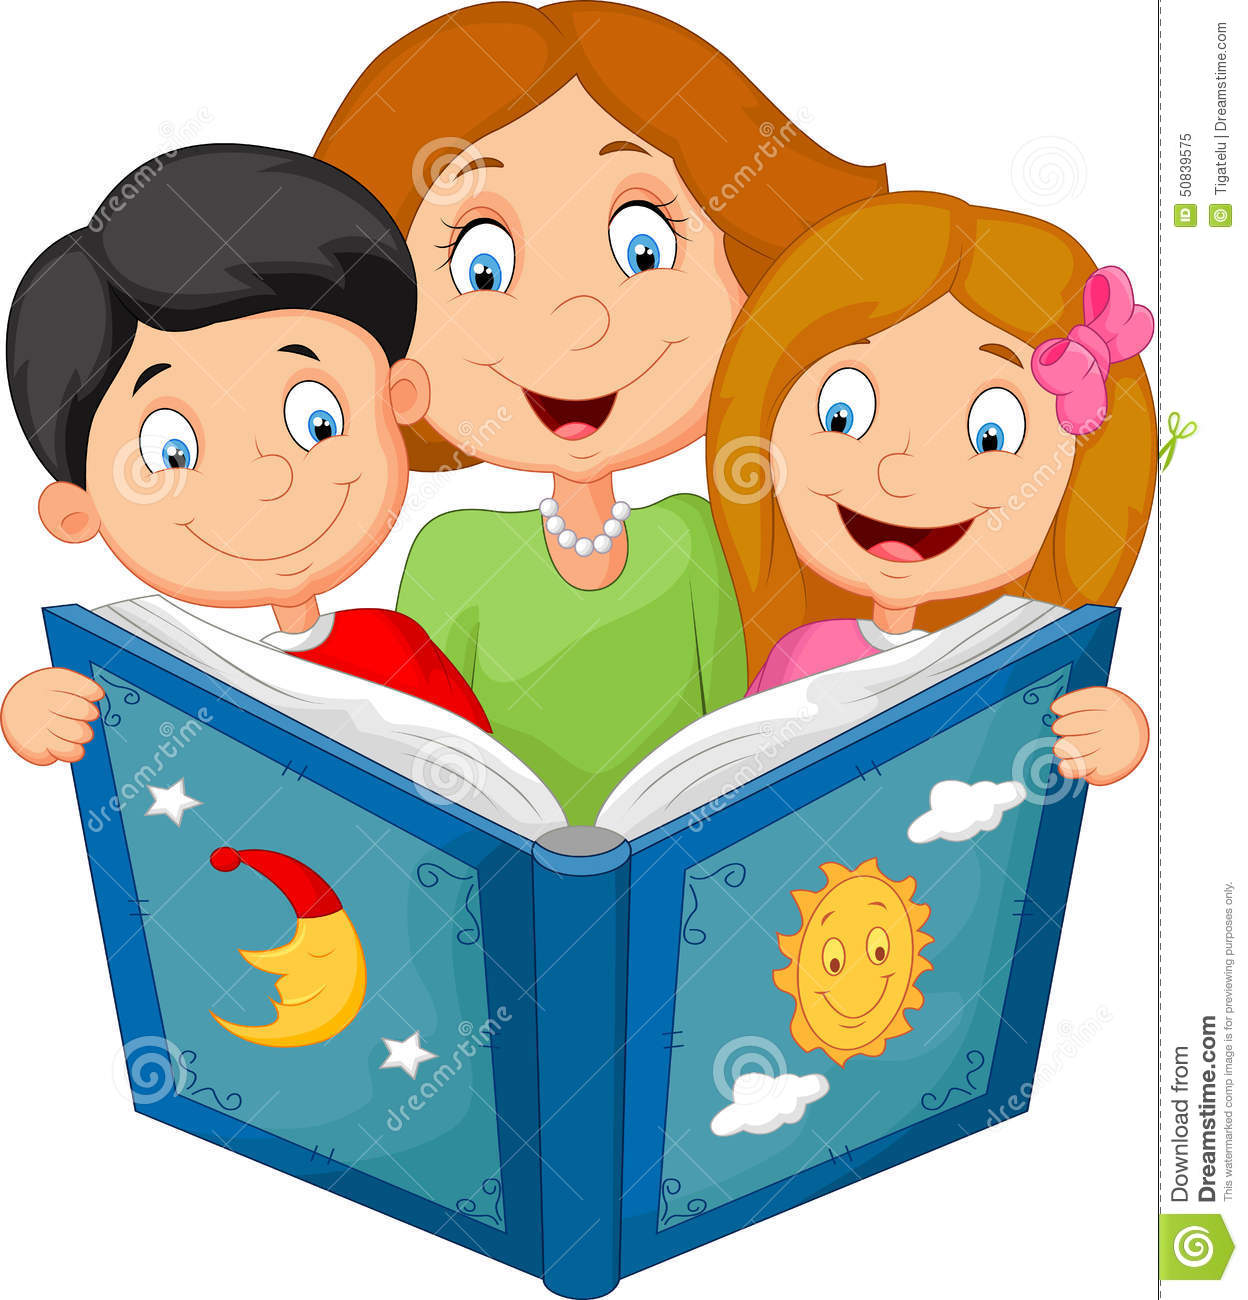 Image result for reading with a parent images cartoon